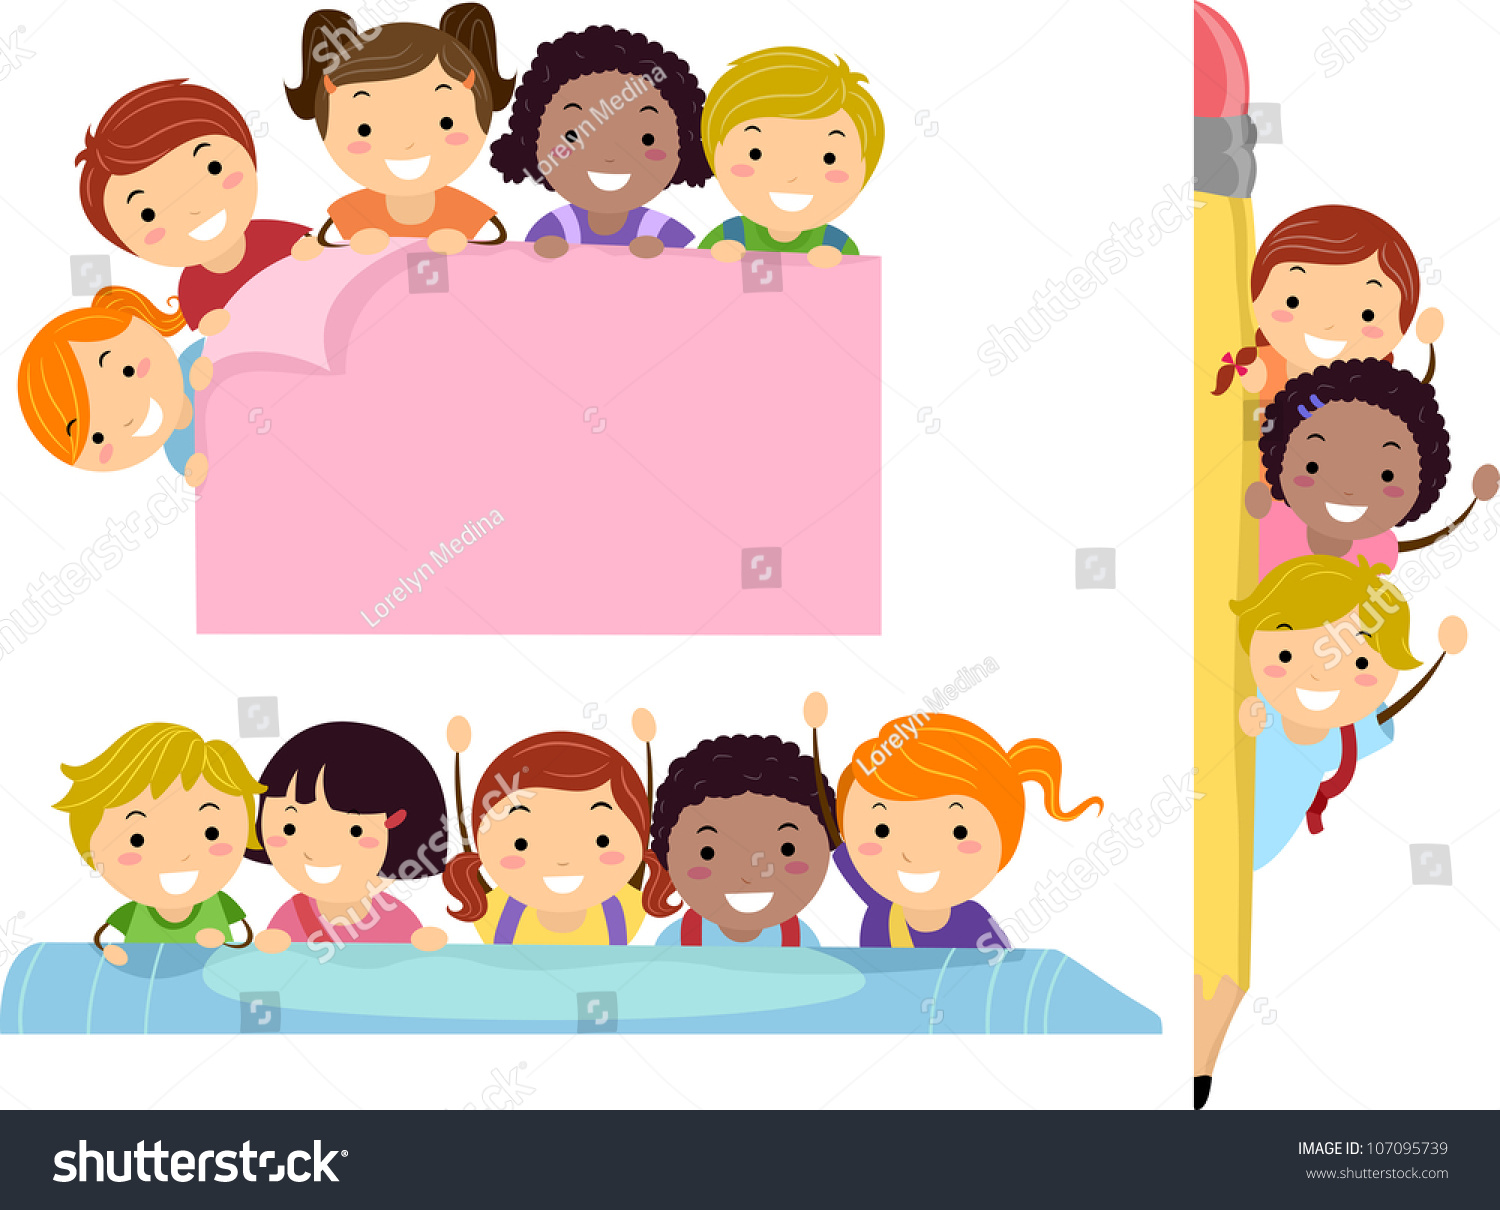 illustration featuring school children beaming happily free clipart for higher education free clipart for education